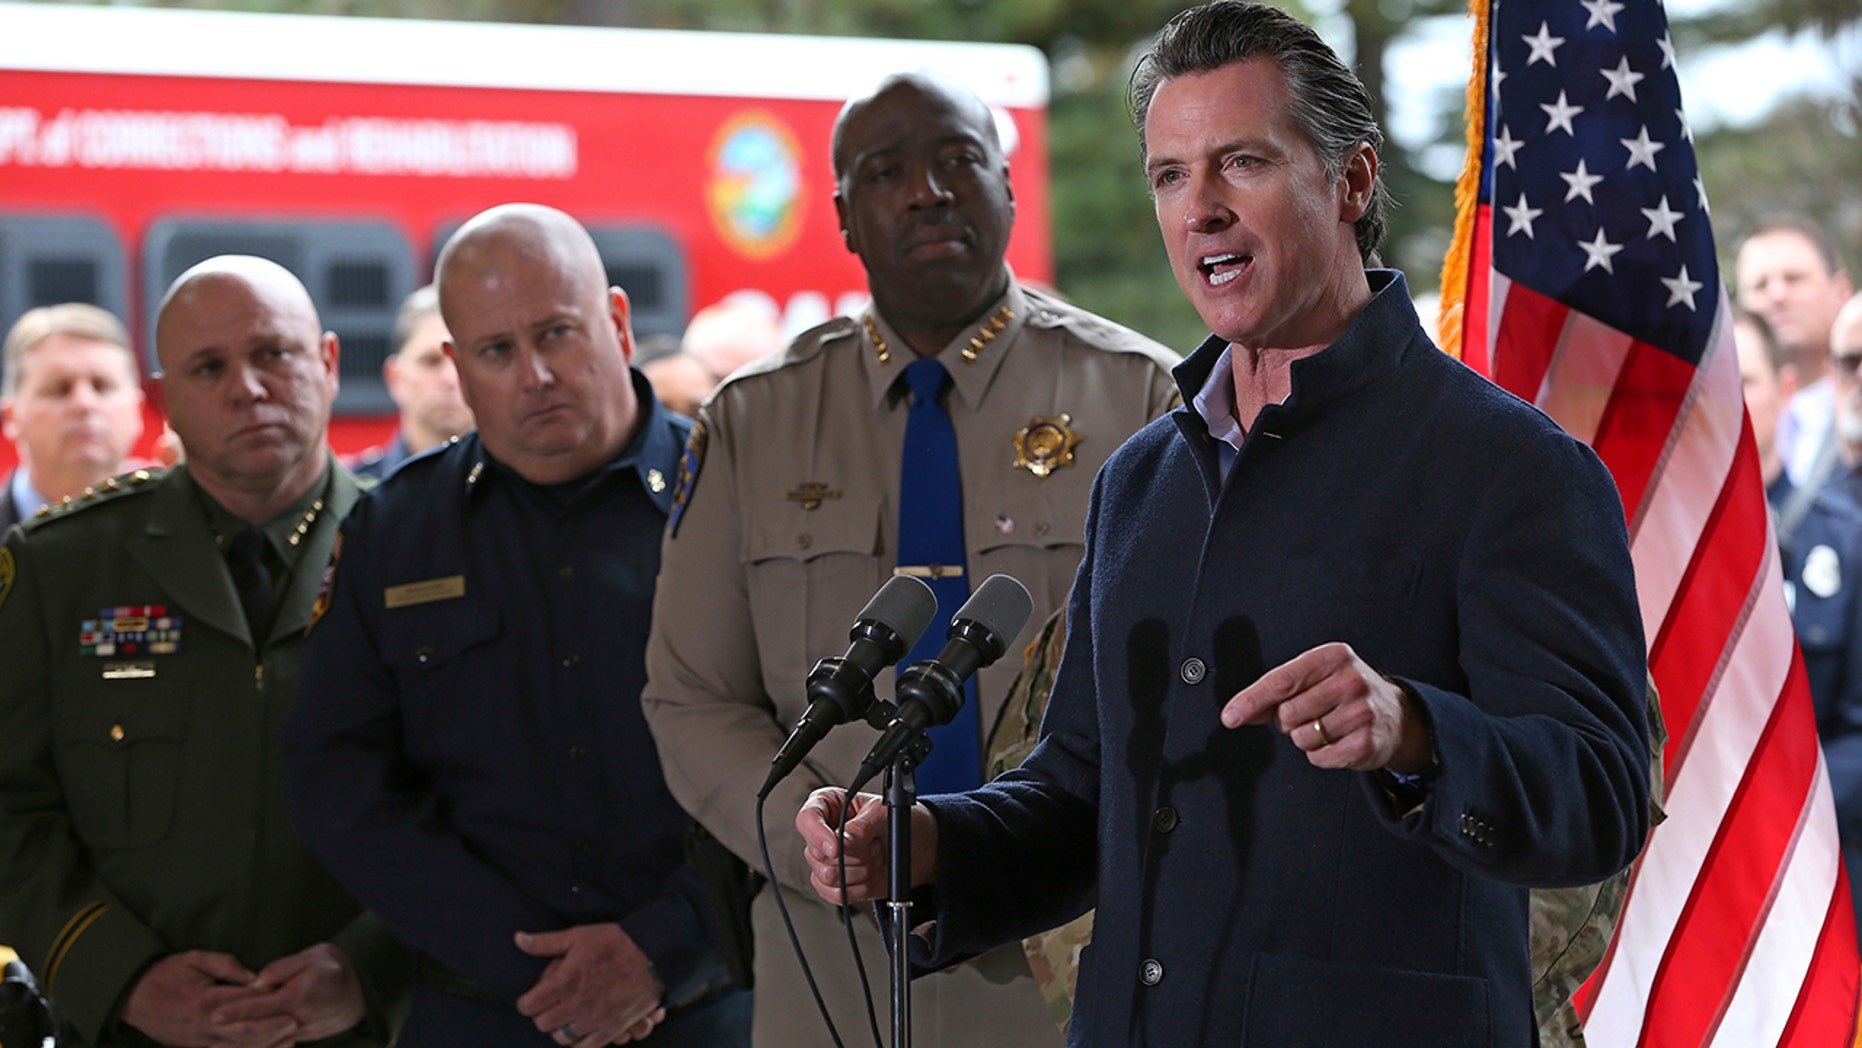 Gov. Gavin Newsom discusses emergency preparedness during a visit to the California Department of Forestry and Fire Protection CalFire Colfax Station Tuesday, Jan. 8, 2019, in Colfax, Calif. (Associated Press)